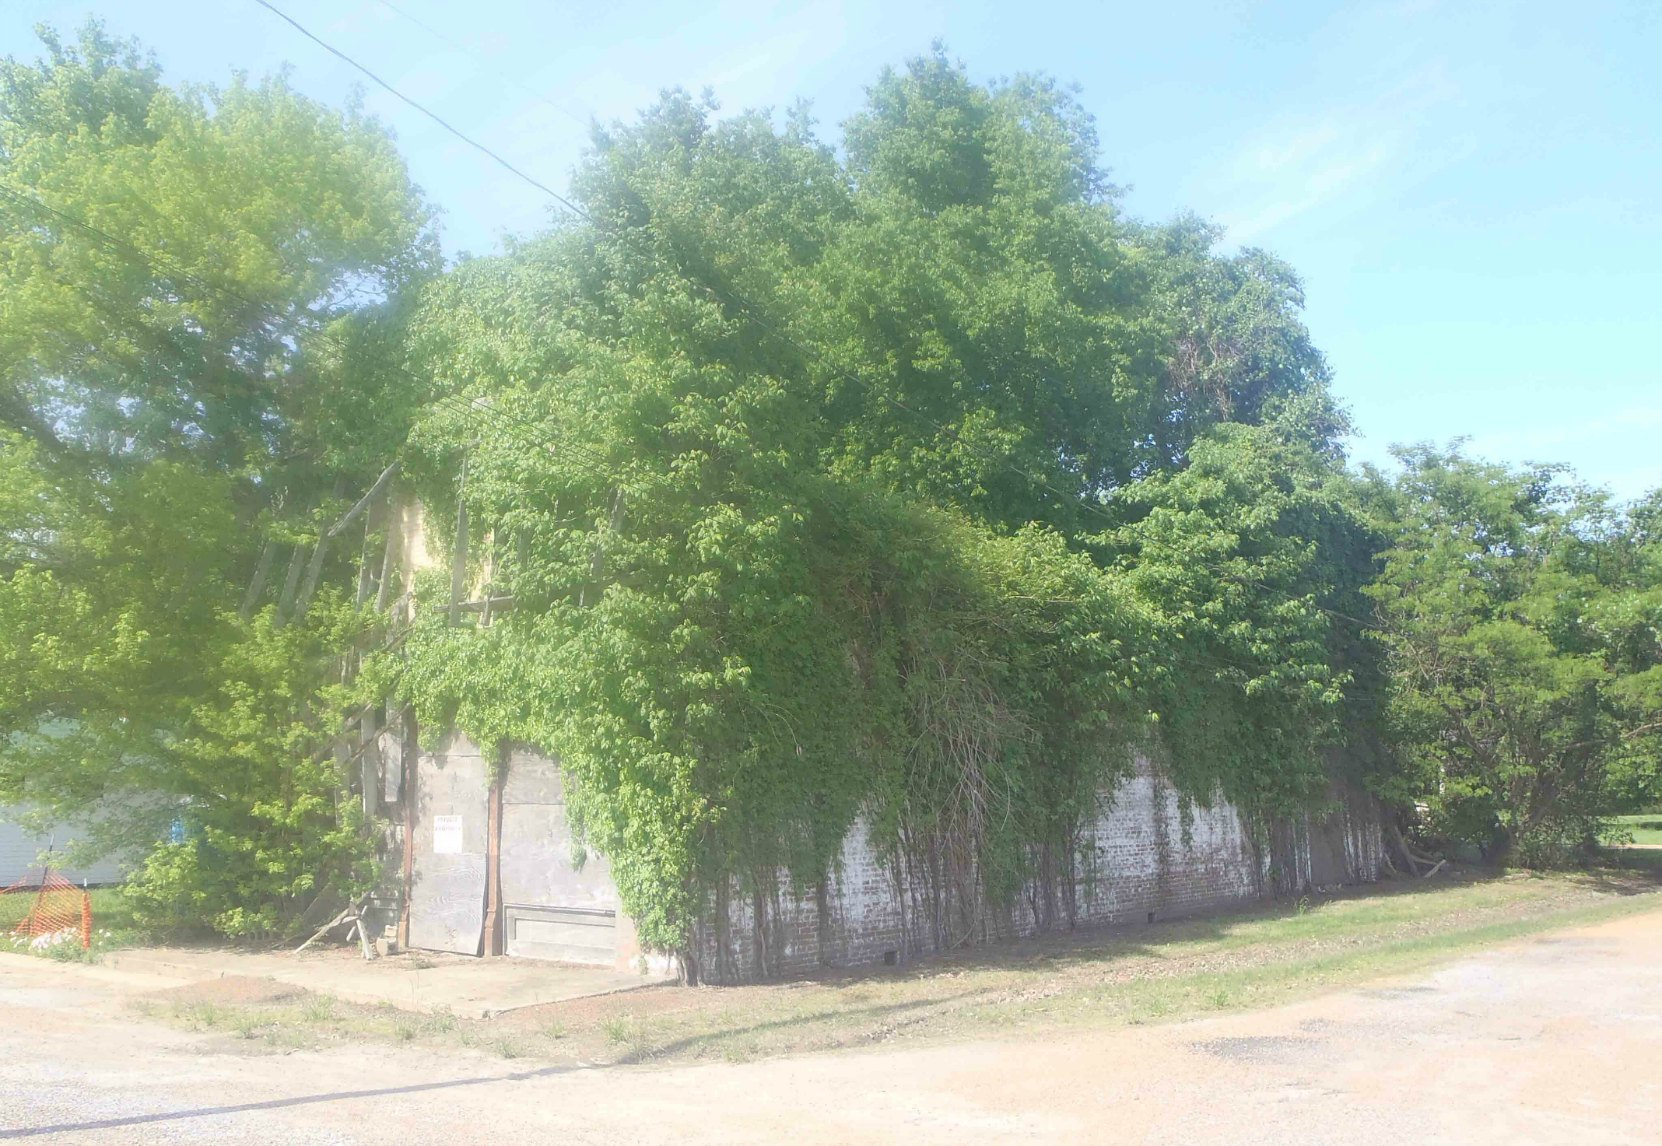 The ruins of Bryant's Grocery, Money, Leflore County, Mississippi. This was once the front and side of the building.